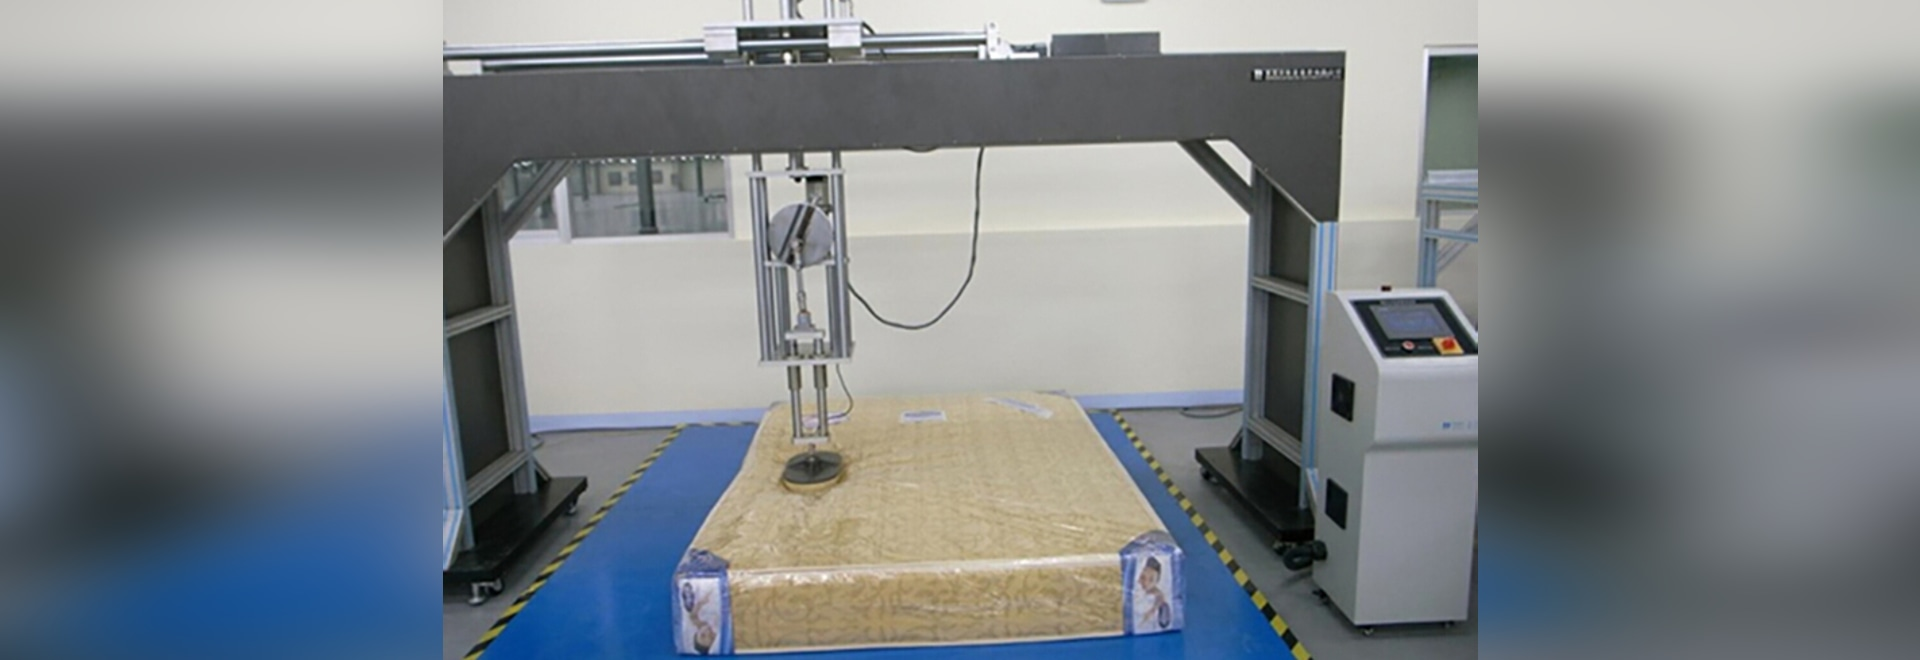 Cornell Mattress Durability Testing machines